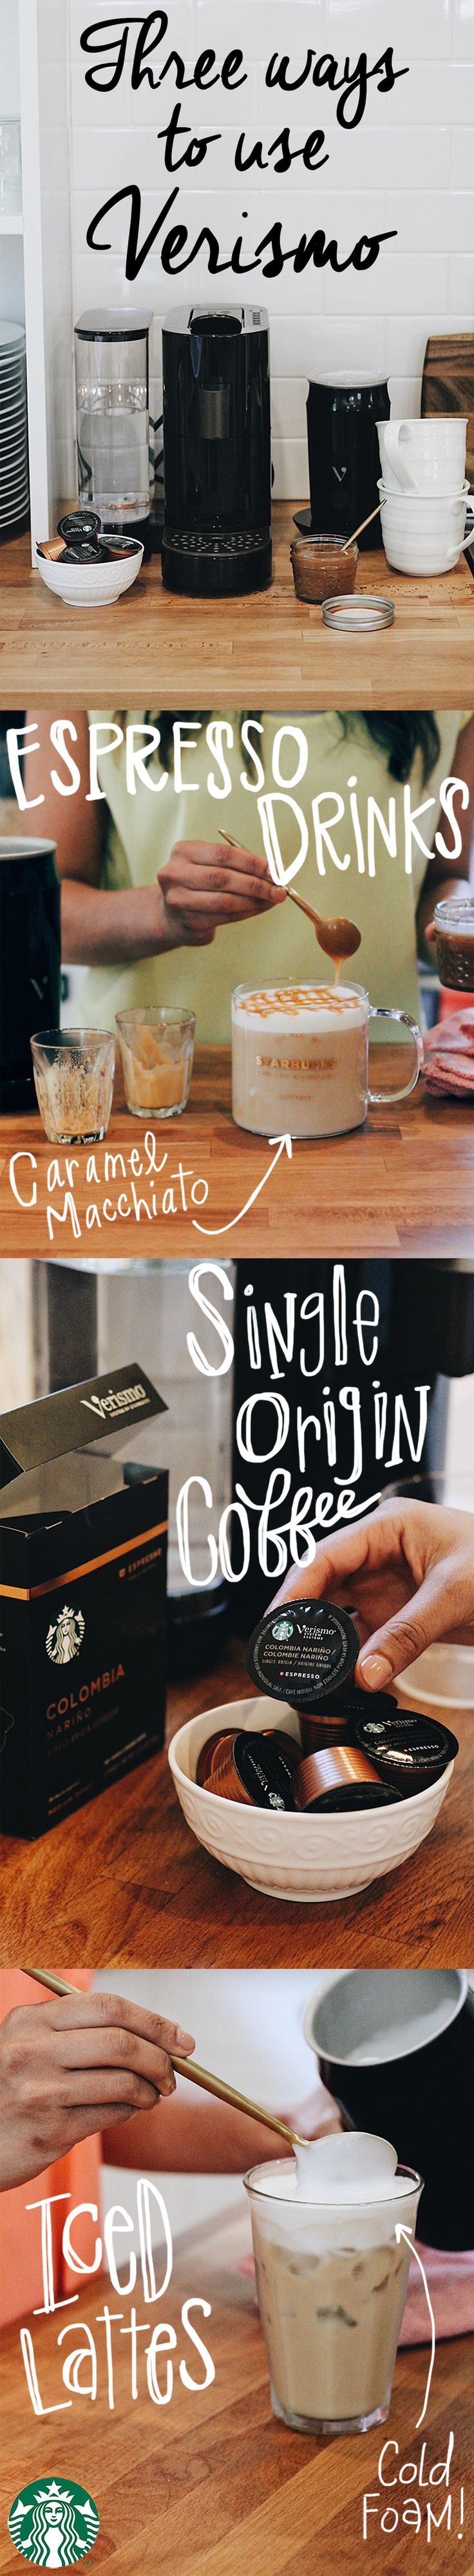 Coffee or espresso? Hot or cold? Foam or no foam? The Verismo + the Verismo Milk Frother makes your favorite Starbucks drinks at home! From the Caramel Macchiato to the Americano to limited edition, single-origin coffees from around the globe–topped with a dollop of hot or cold foam :)